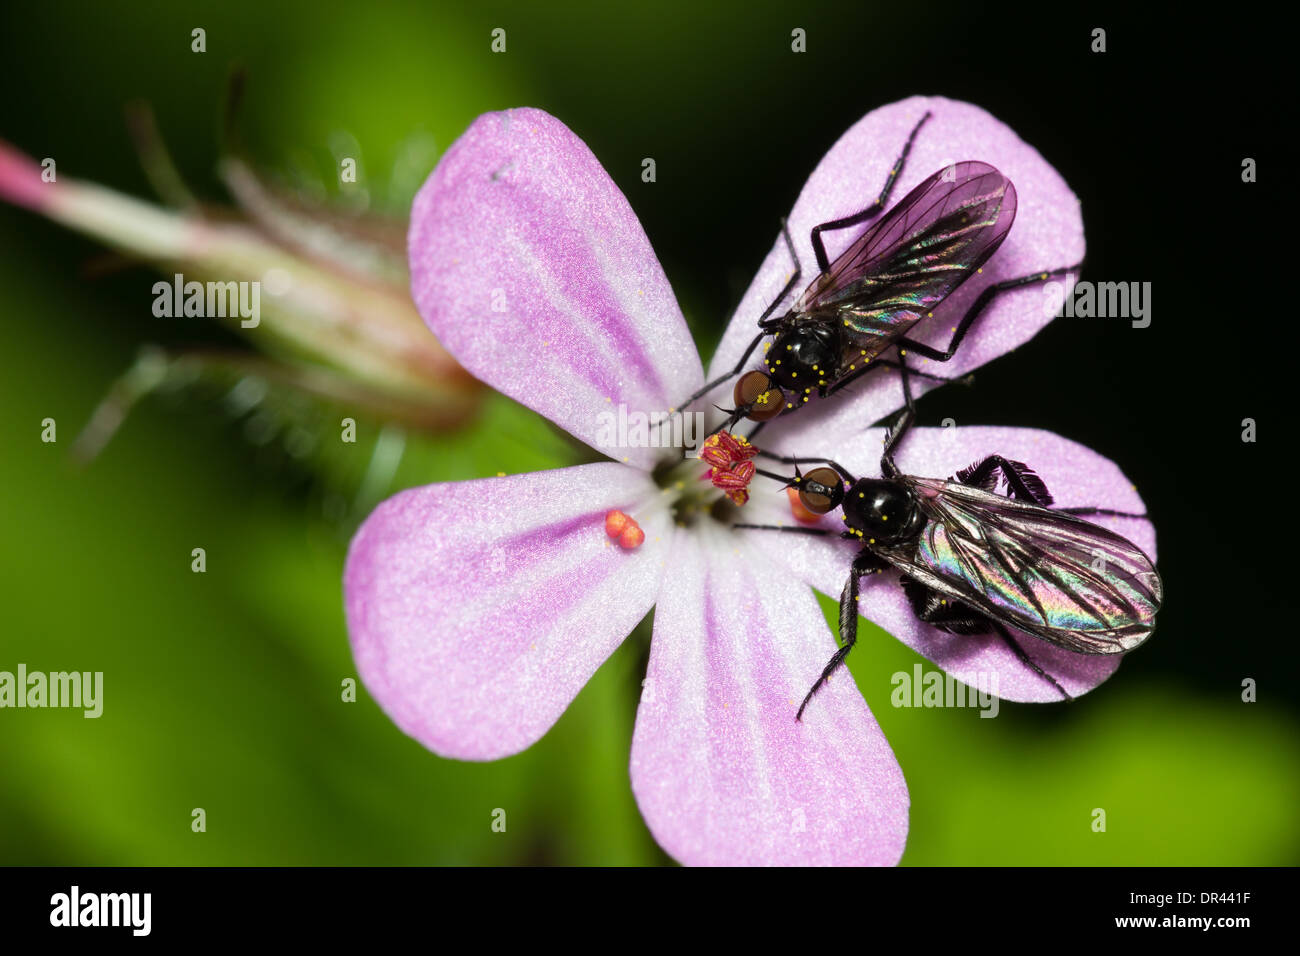 male-and-female-dance-flies-empis-pennipes-feeding-on-geranium-robertianum-DR441F.jpg